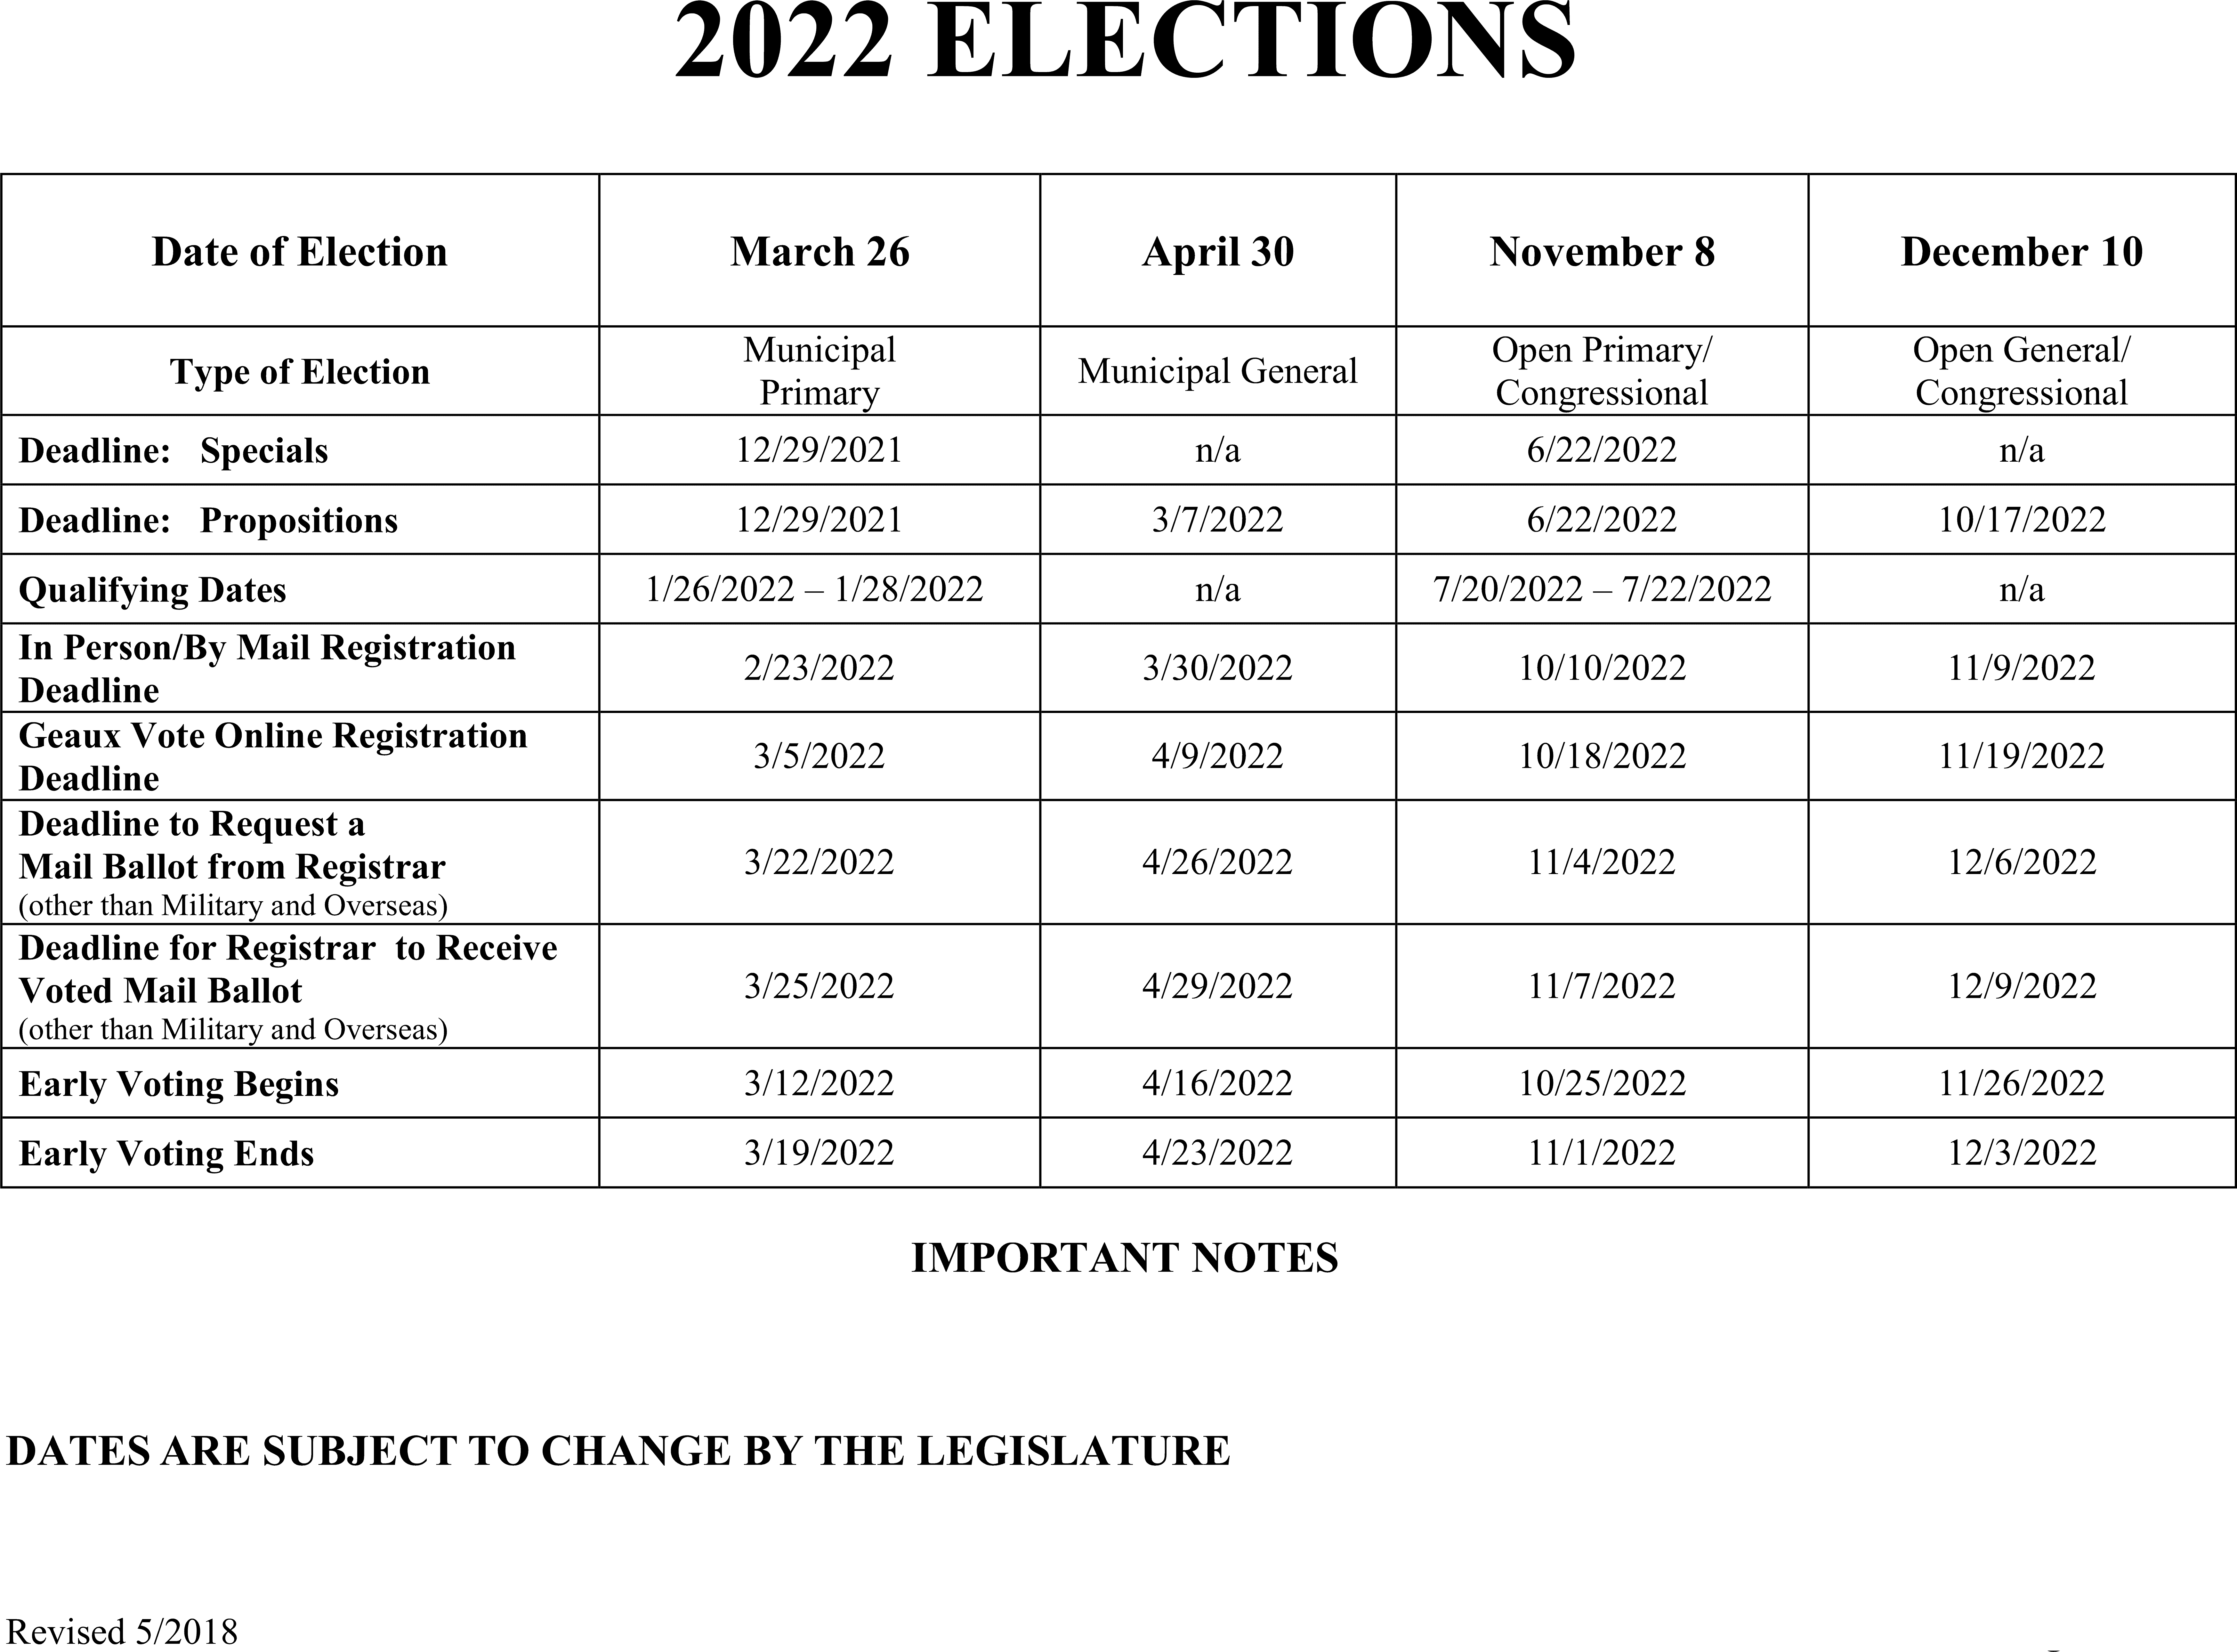 2022 Elections Dates